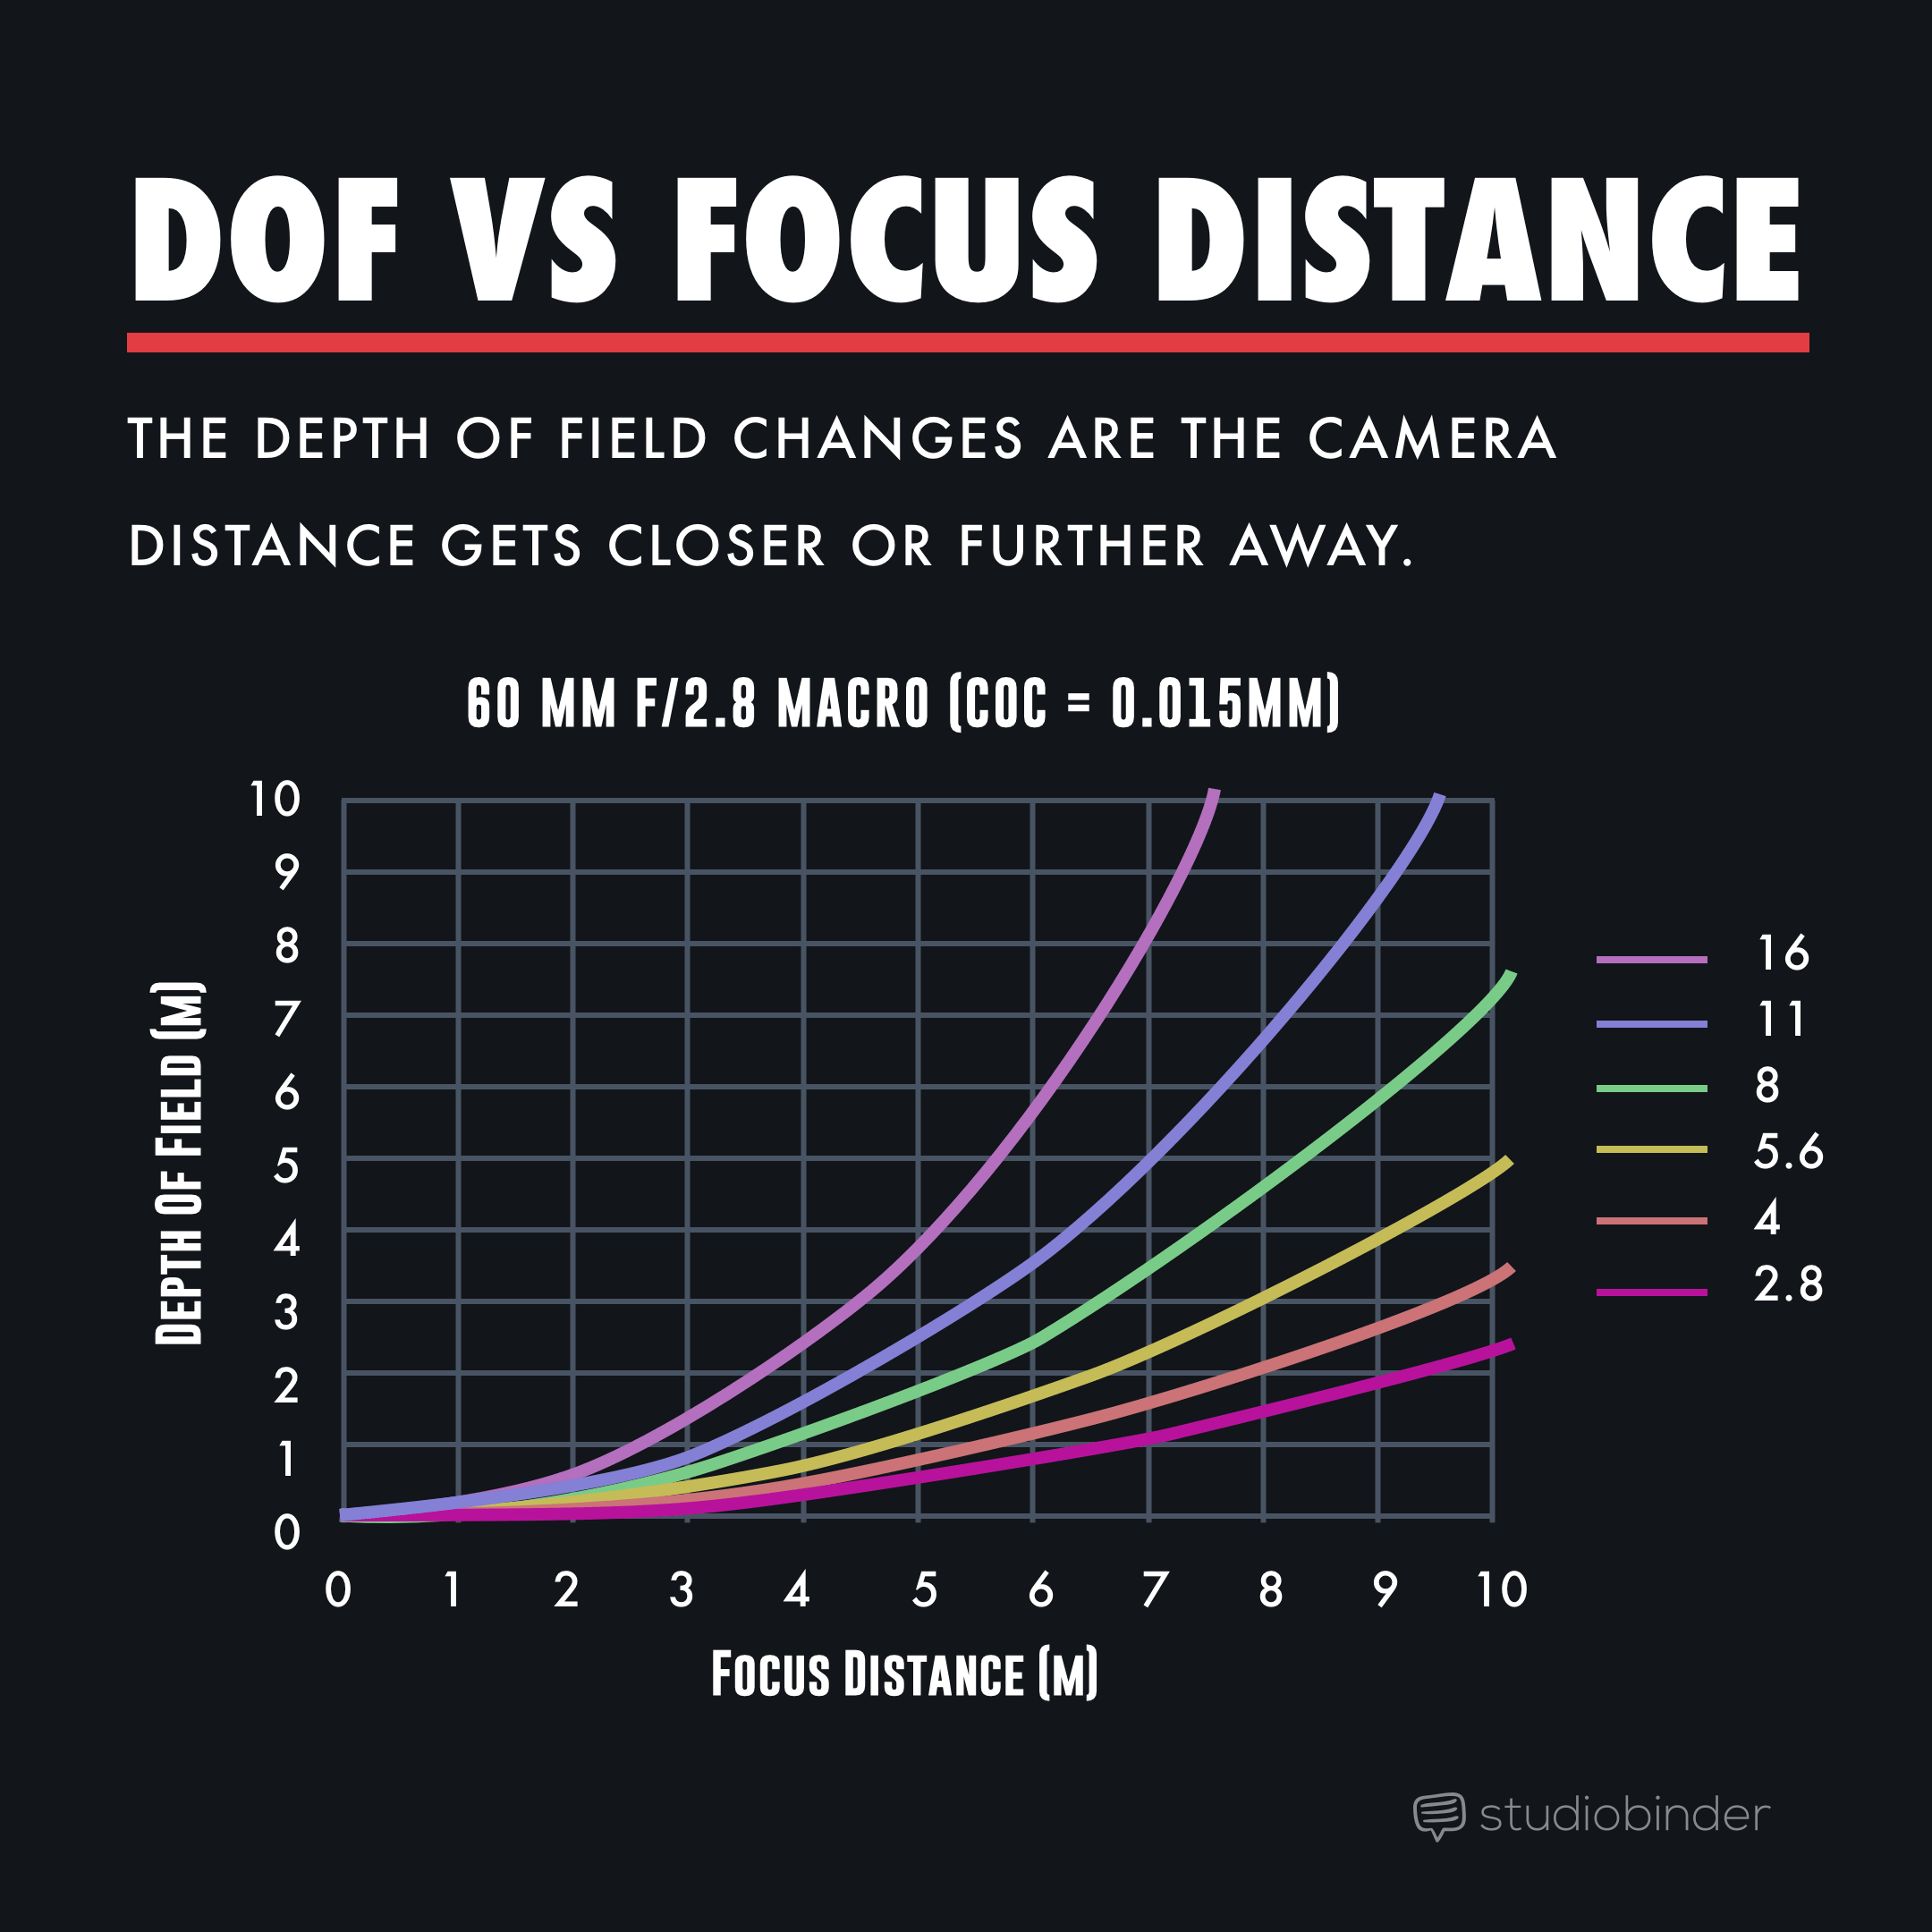 Depth-of-Field-Focal-Distance-Graphc-StudioBinder